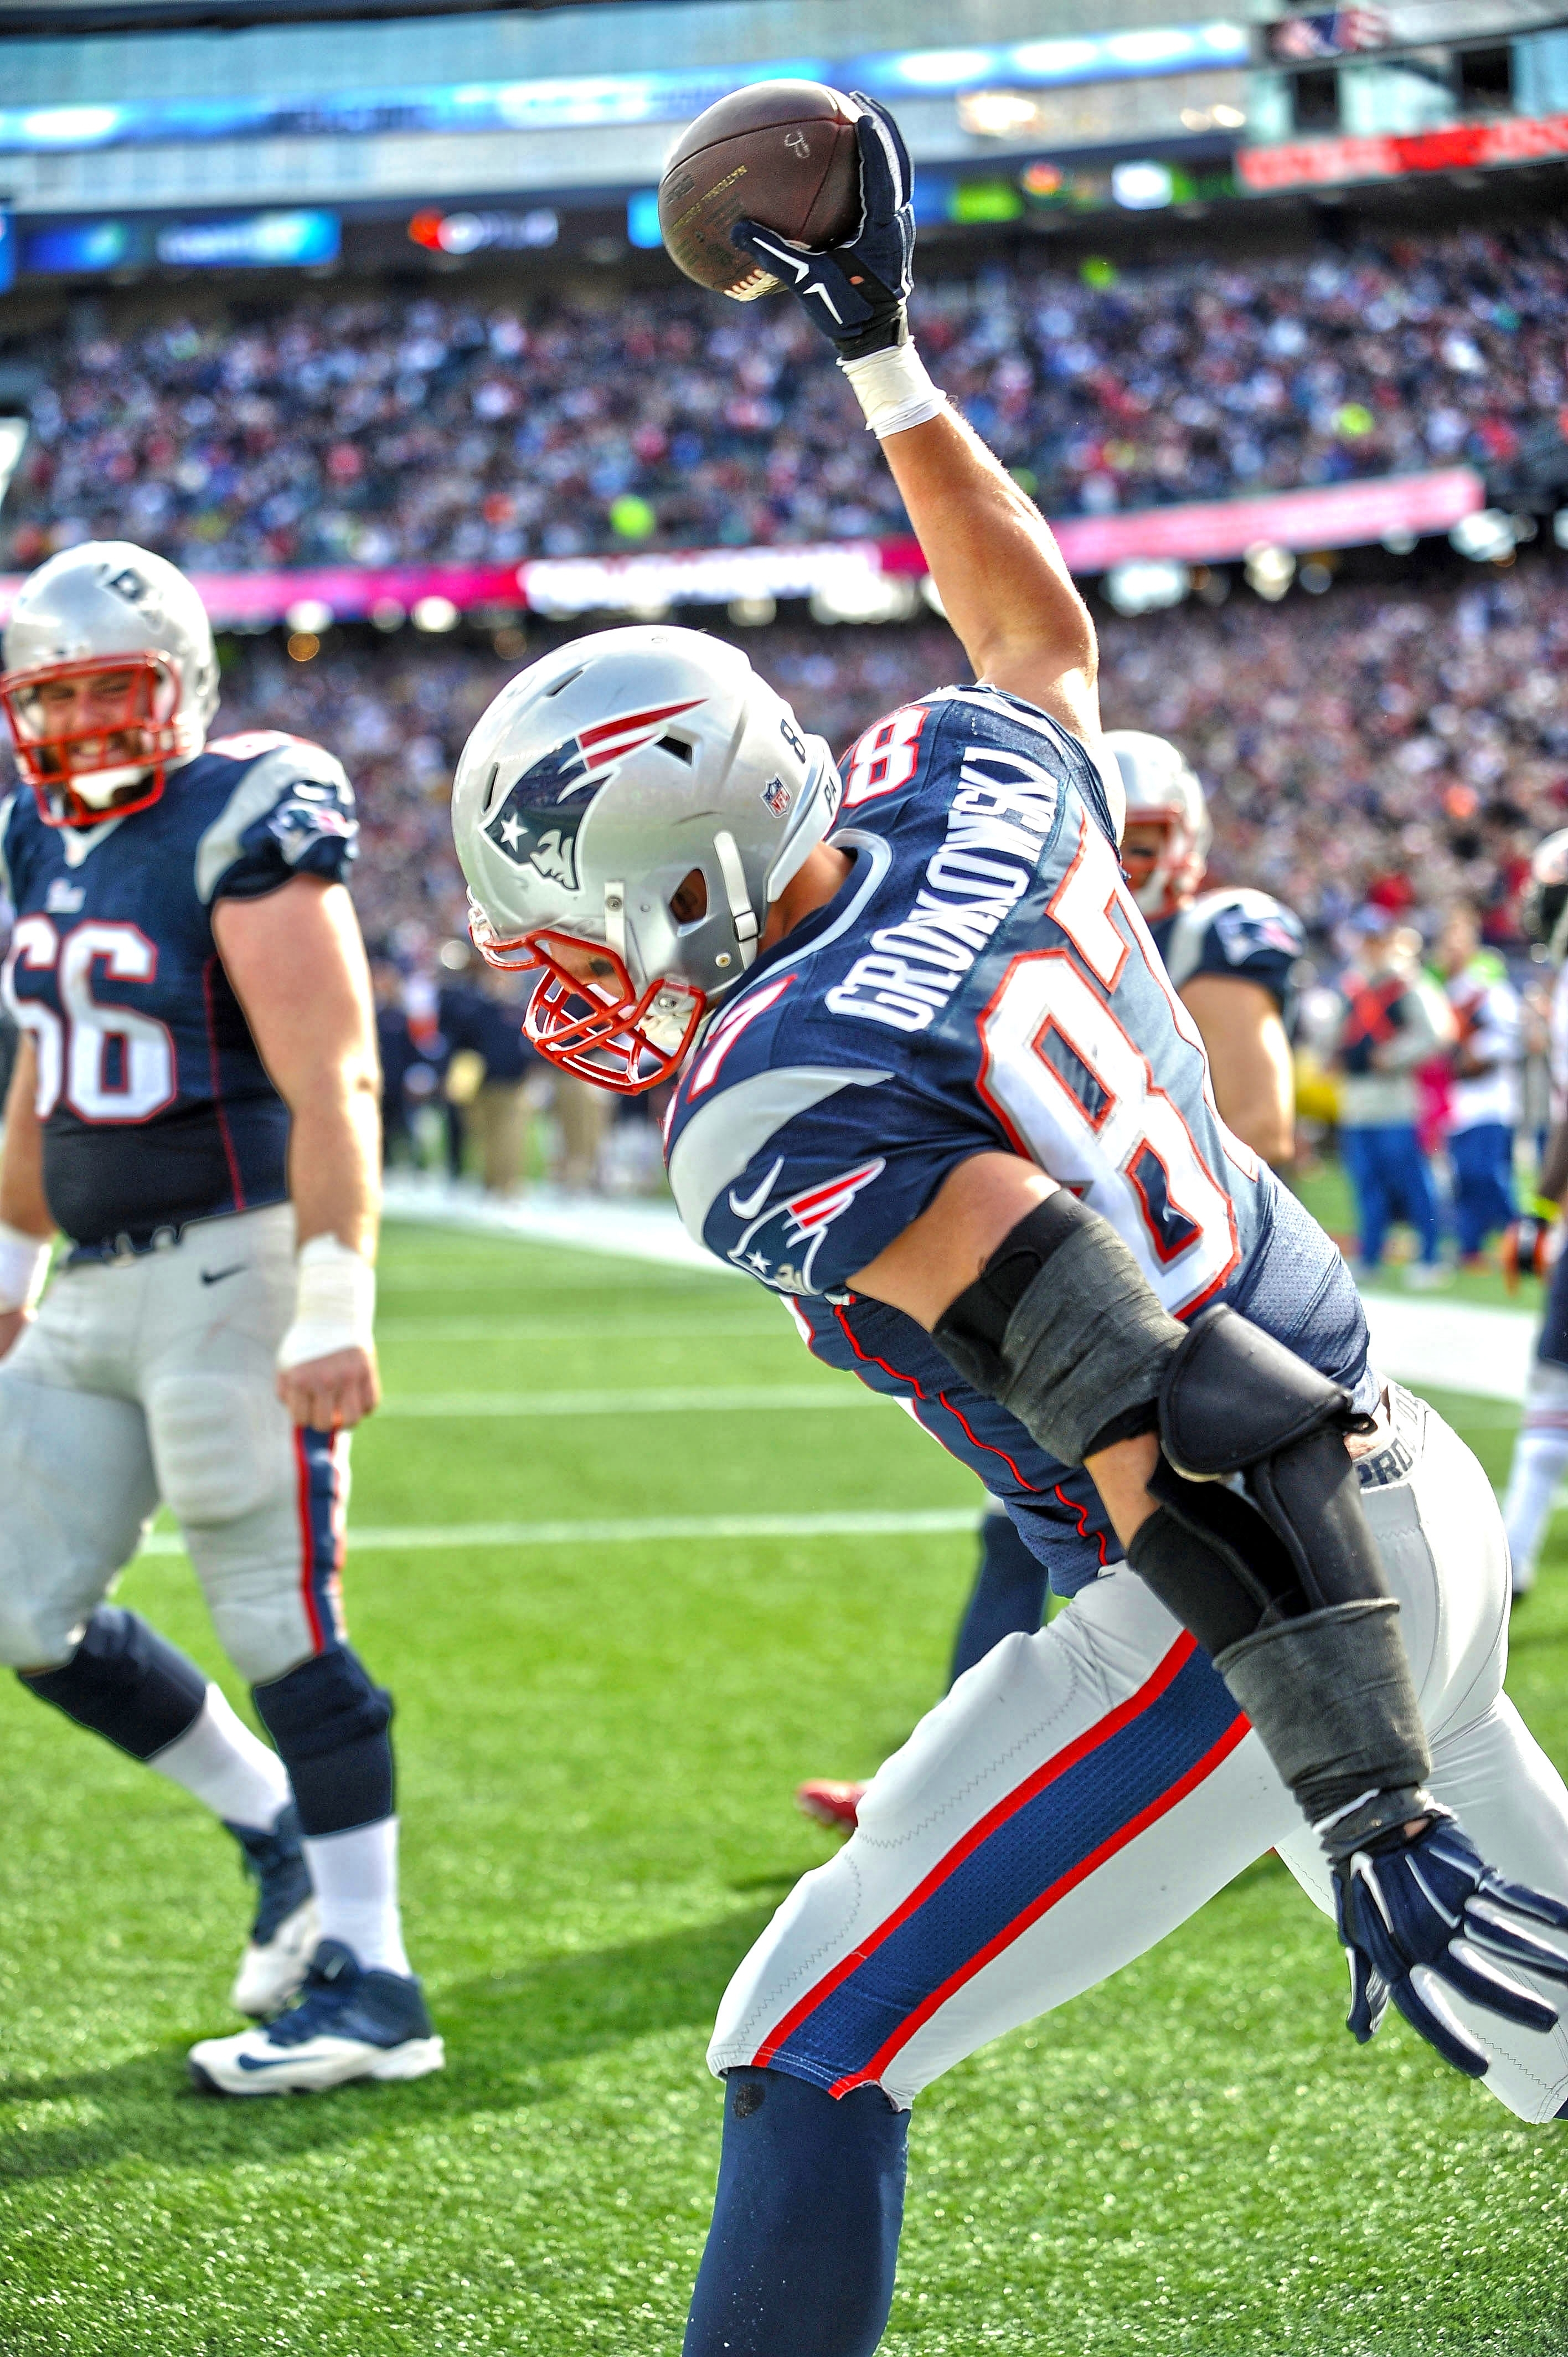 rob gronkowski #87 - gronk spike | patriots | pinterest | rob